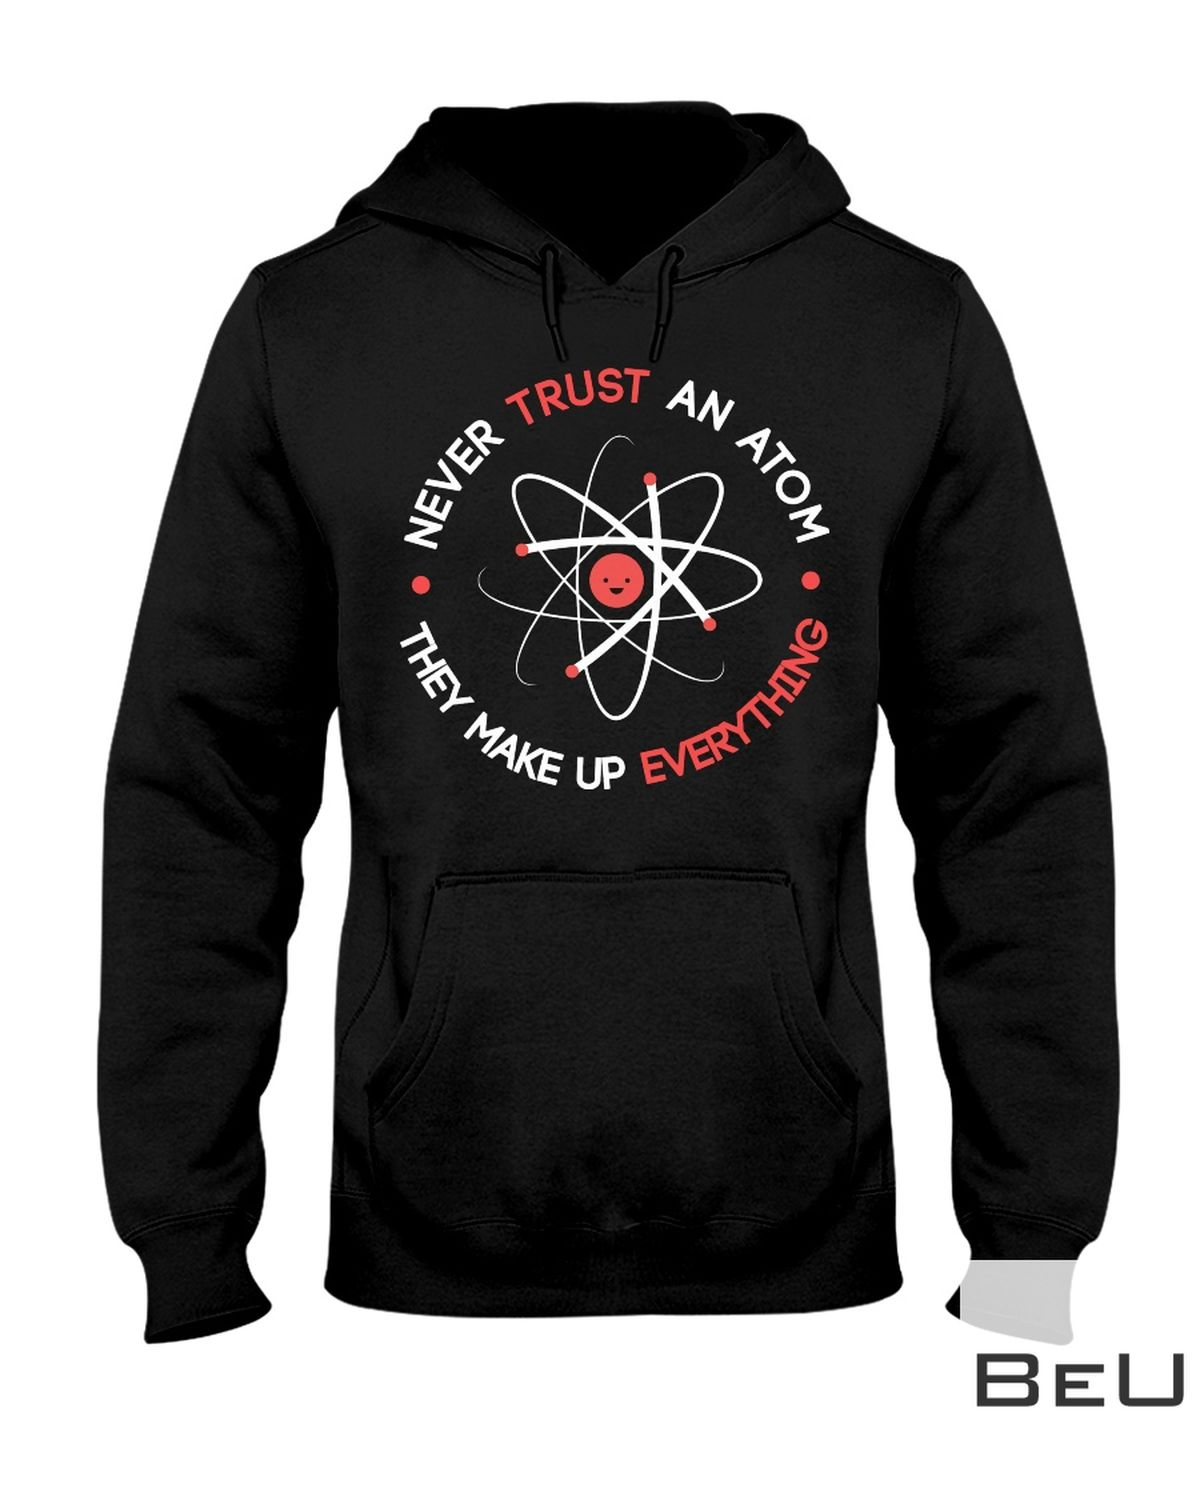 Never Trust An Atom They Make Up Everything Shirtx